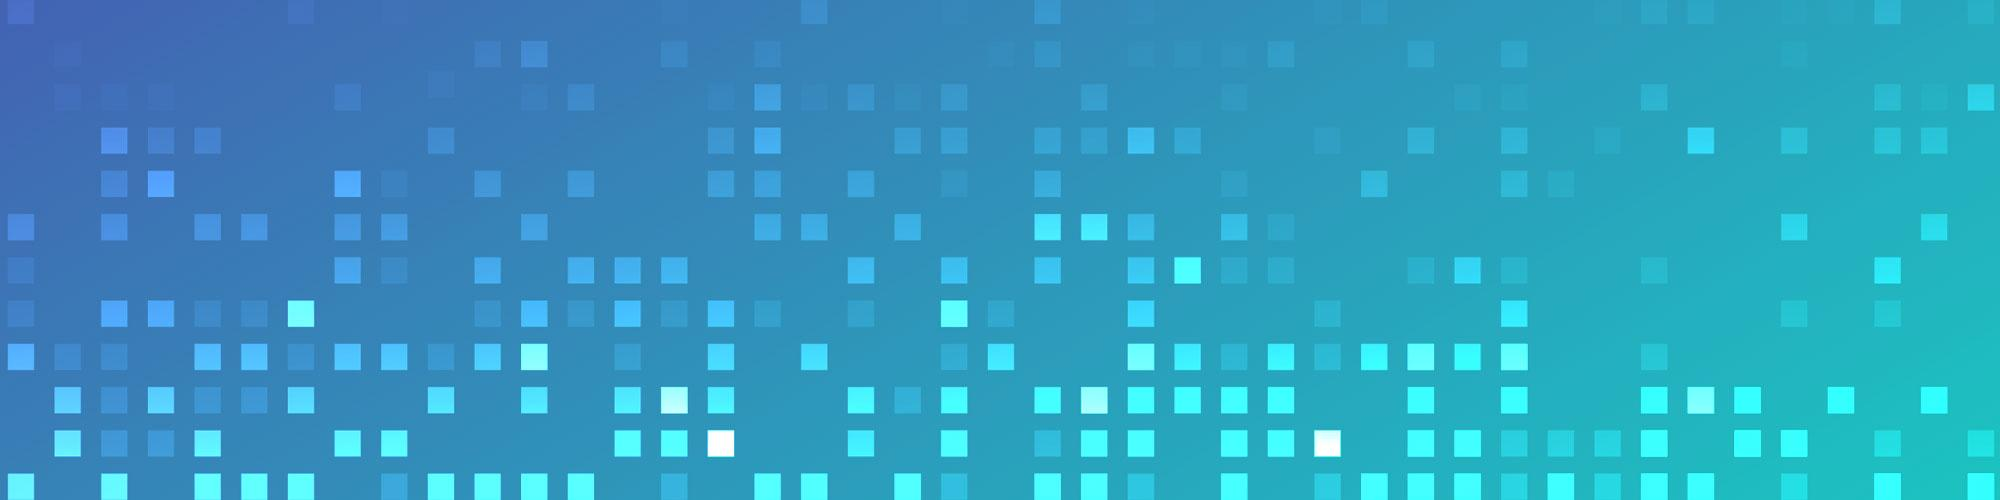 Square pattern on violet to teal gradient